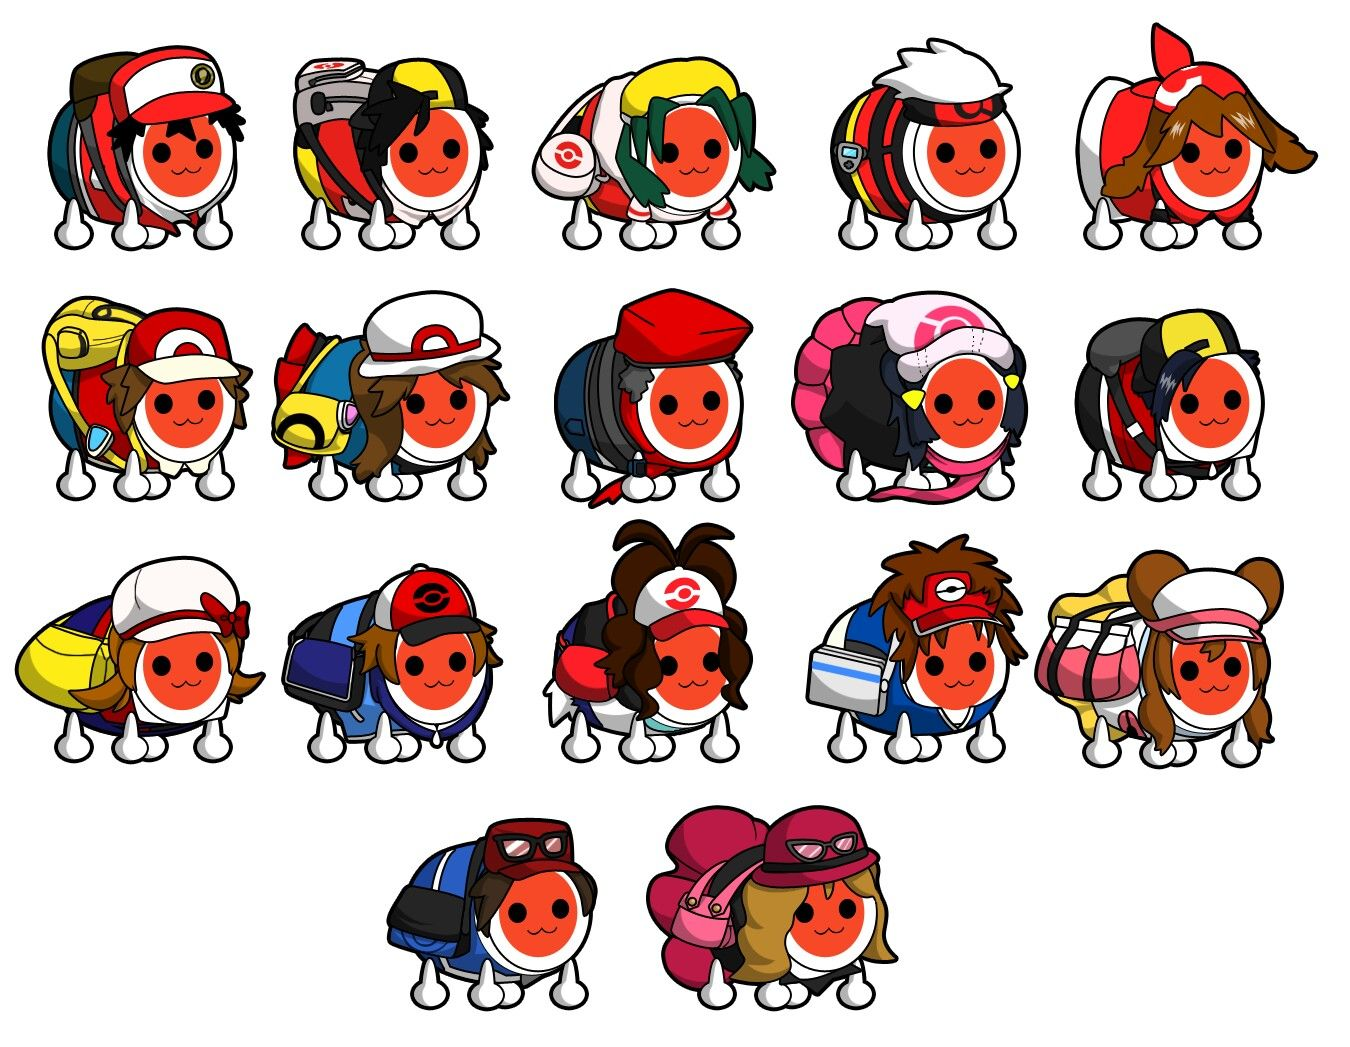 Taiko no tatsujin x Pokémon (With images) Pokemon